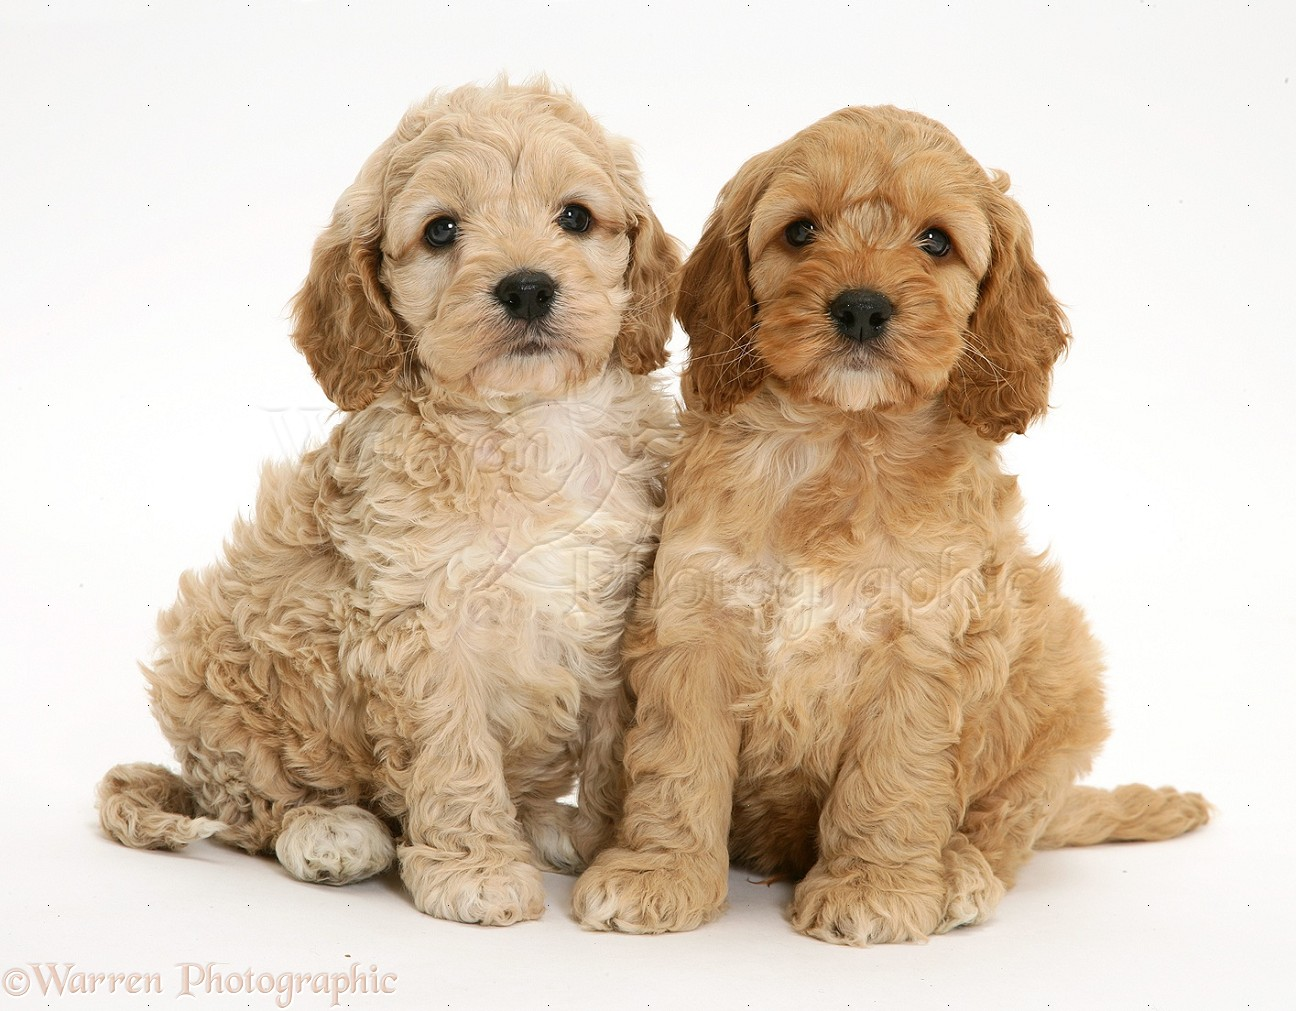 Dogs: Cockapoo puppies photo - WP15368